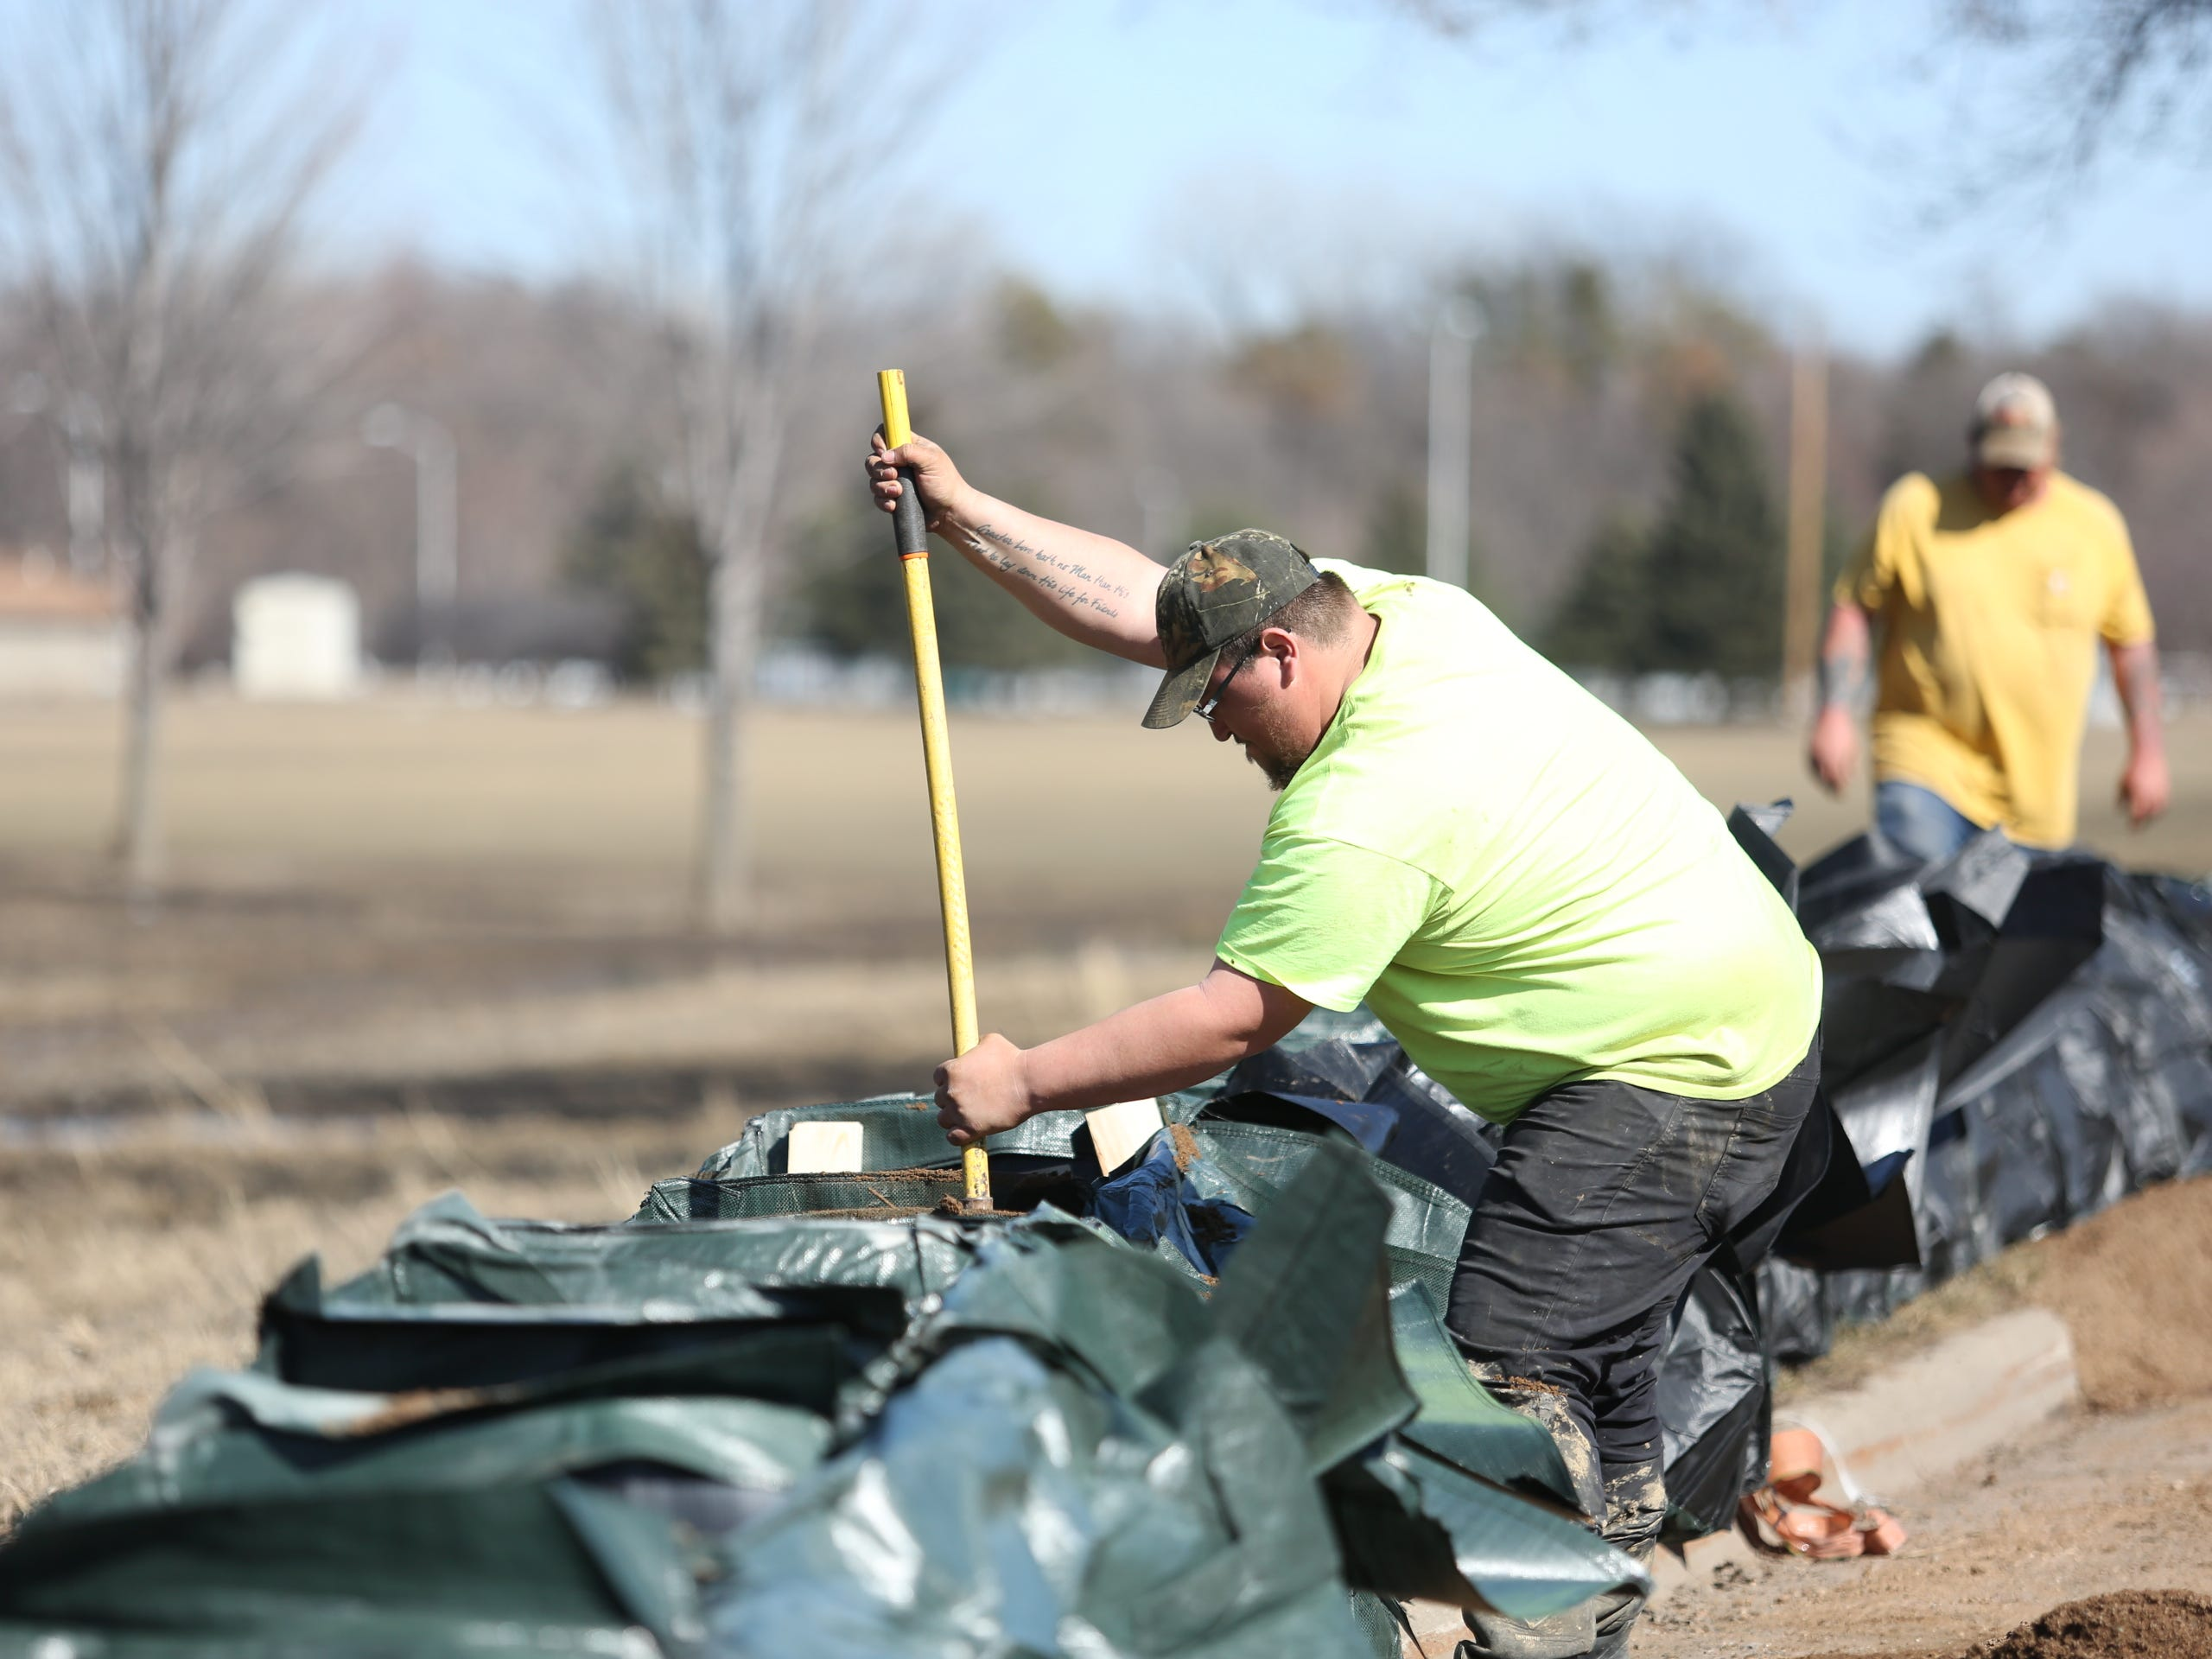 Tom Clark, with First Rate Excavate Labor, packs down sand inside trap bags along the Big Sioux River and Tomar Park March 21, 2019. The City of Sioux Falls installed a trap bag system near the Lotta Street and Minnesota Avenue residential area in hopes of preventing flooding early next week.